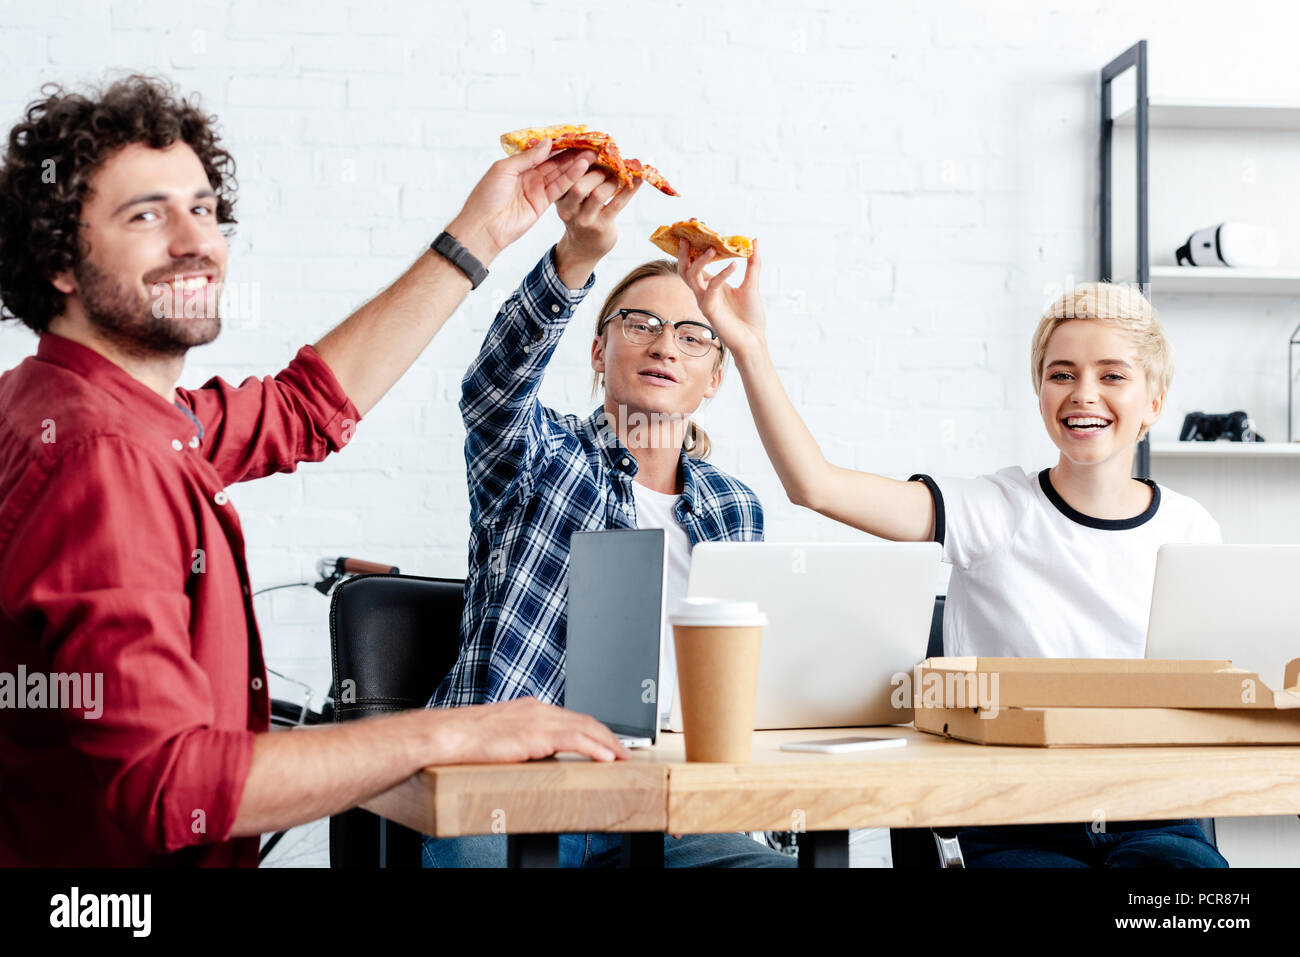 happy young business colleagues eating pizza and smiling at camera Stock Photo